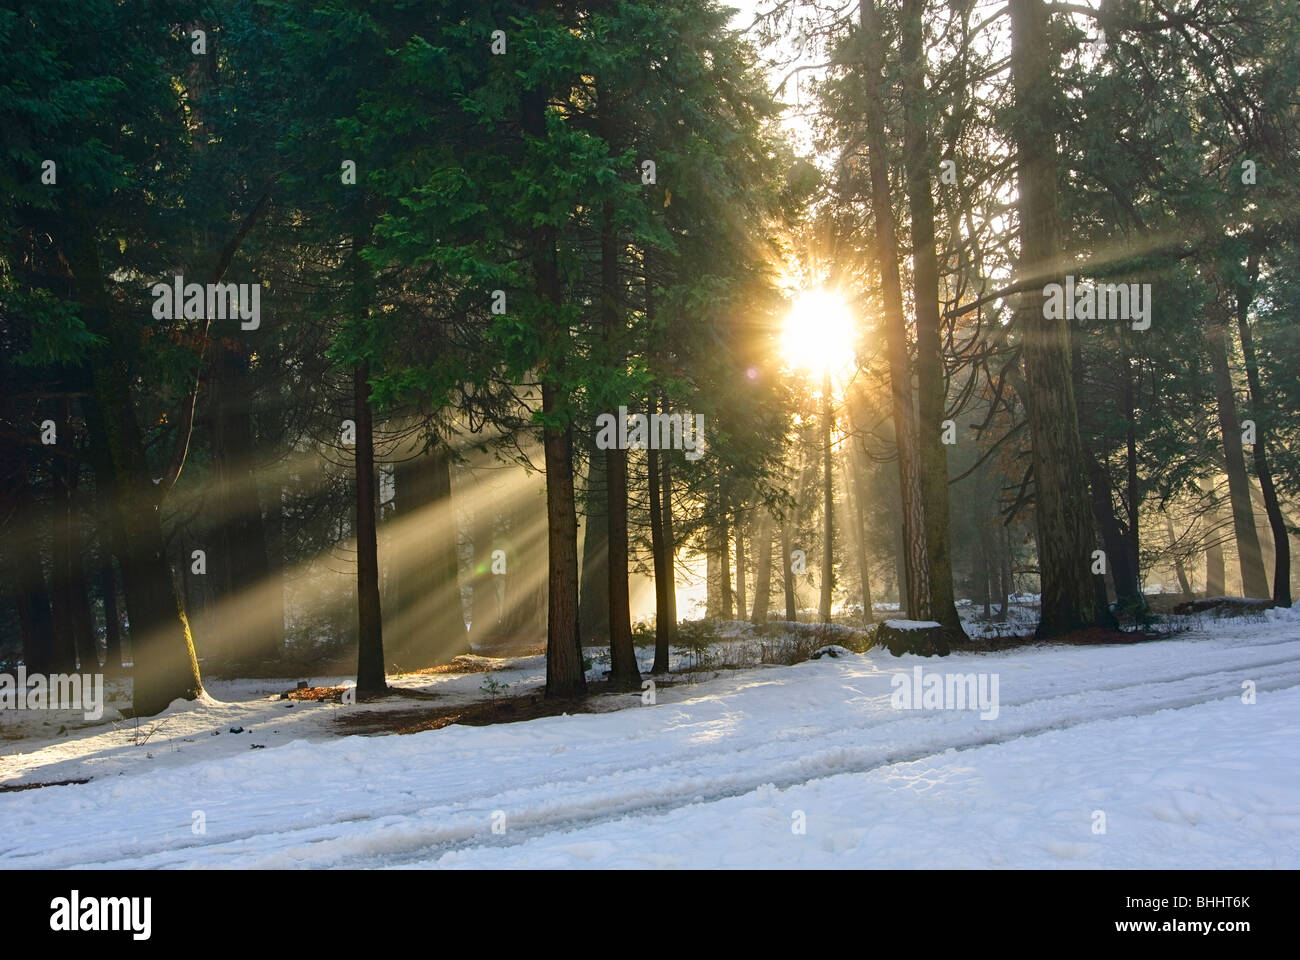 Let there be light. Sun beams pouring through a forest scene. - Stock Image